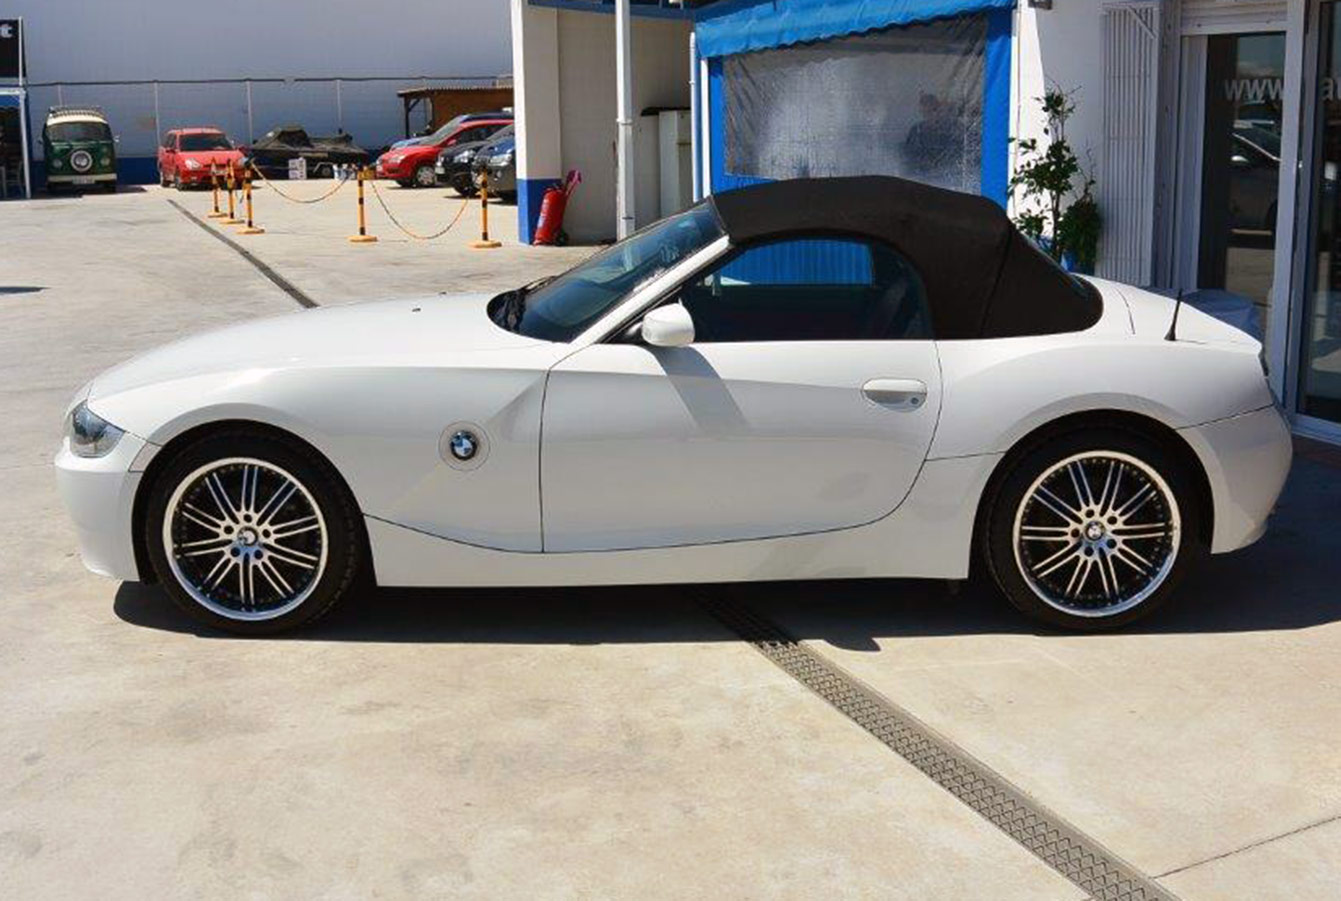 Bmw Z8 Review 2003 Bmw Z8 Alpina Specs For 2018 Review Release 1995 Bmw M5 Review Top 10 Photo